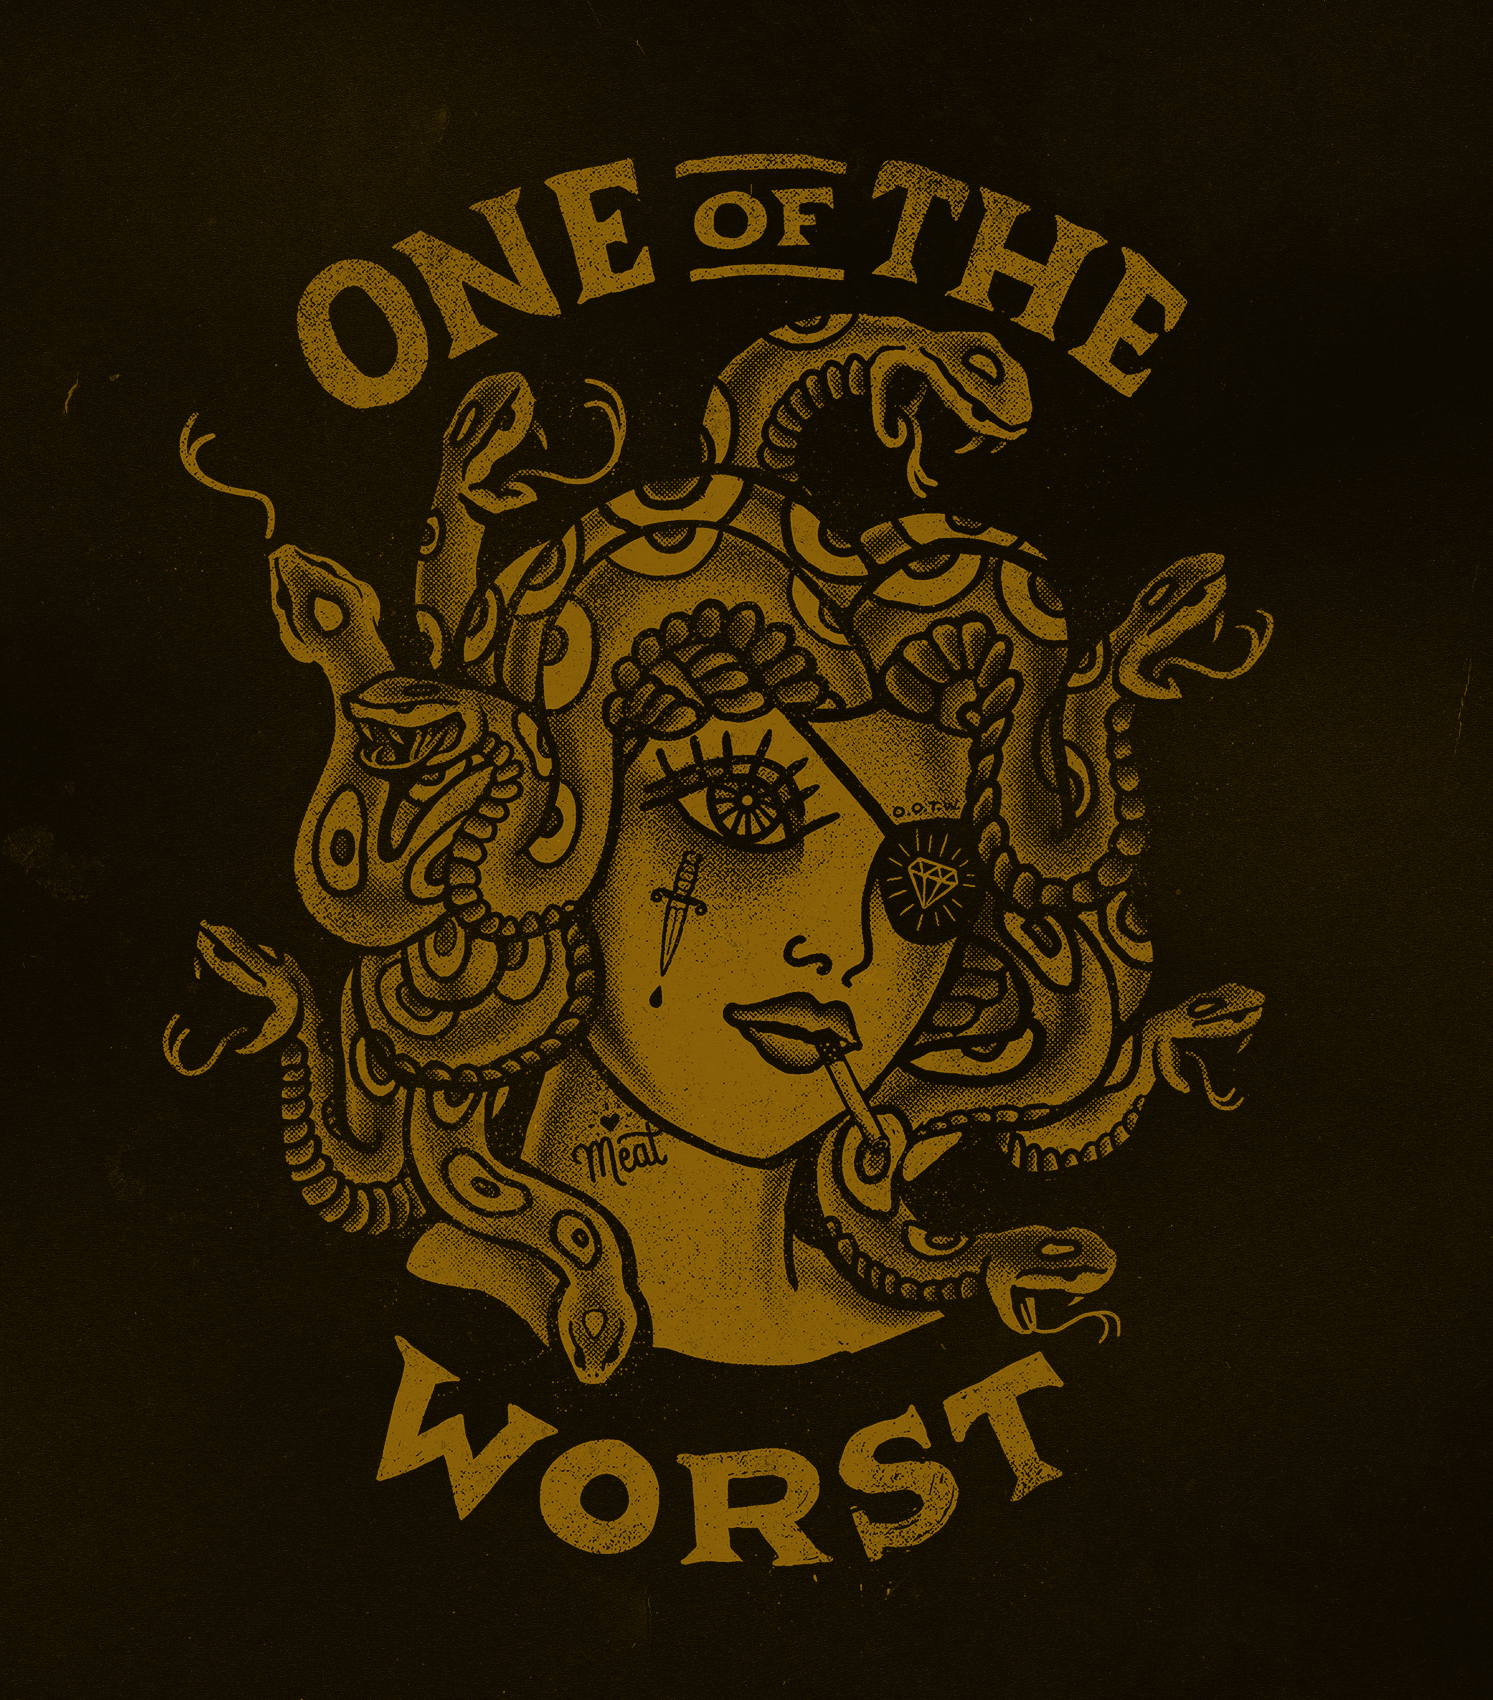 ONE OF THE WORST - MEDUSA